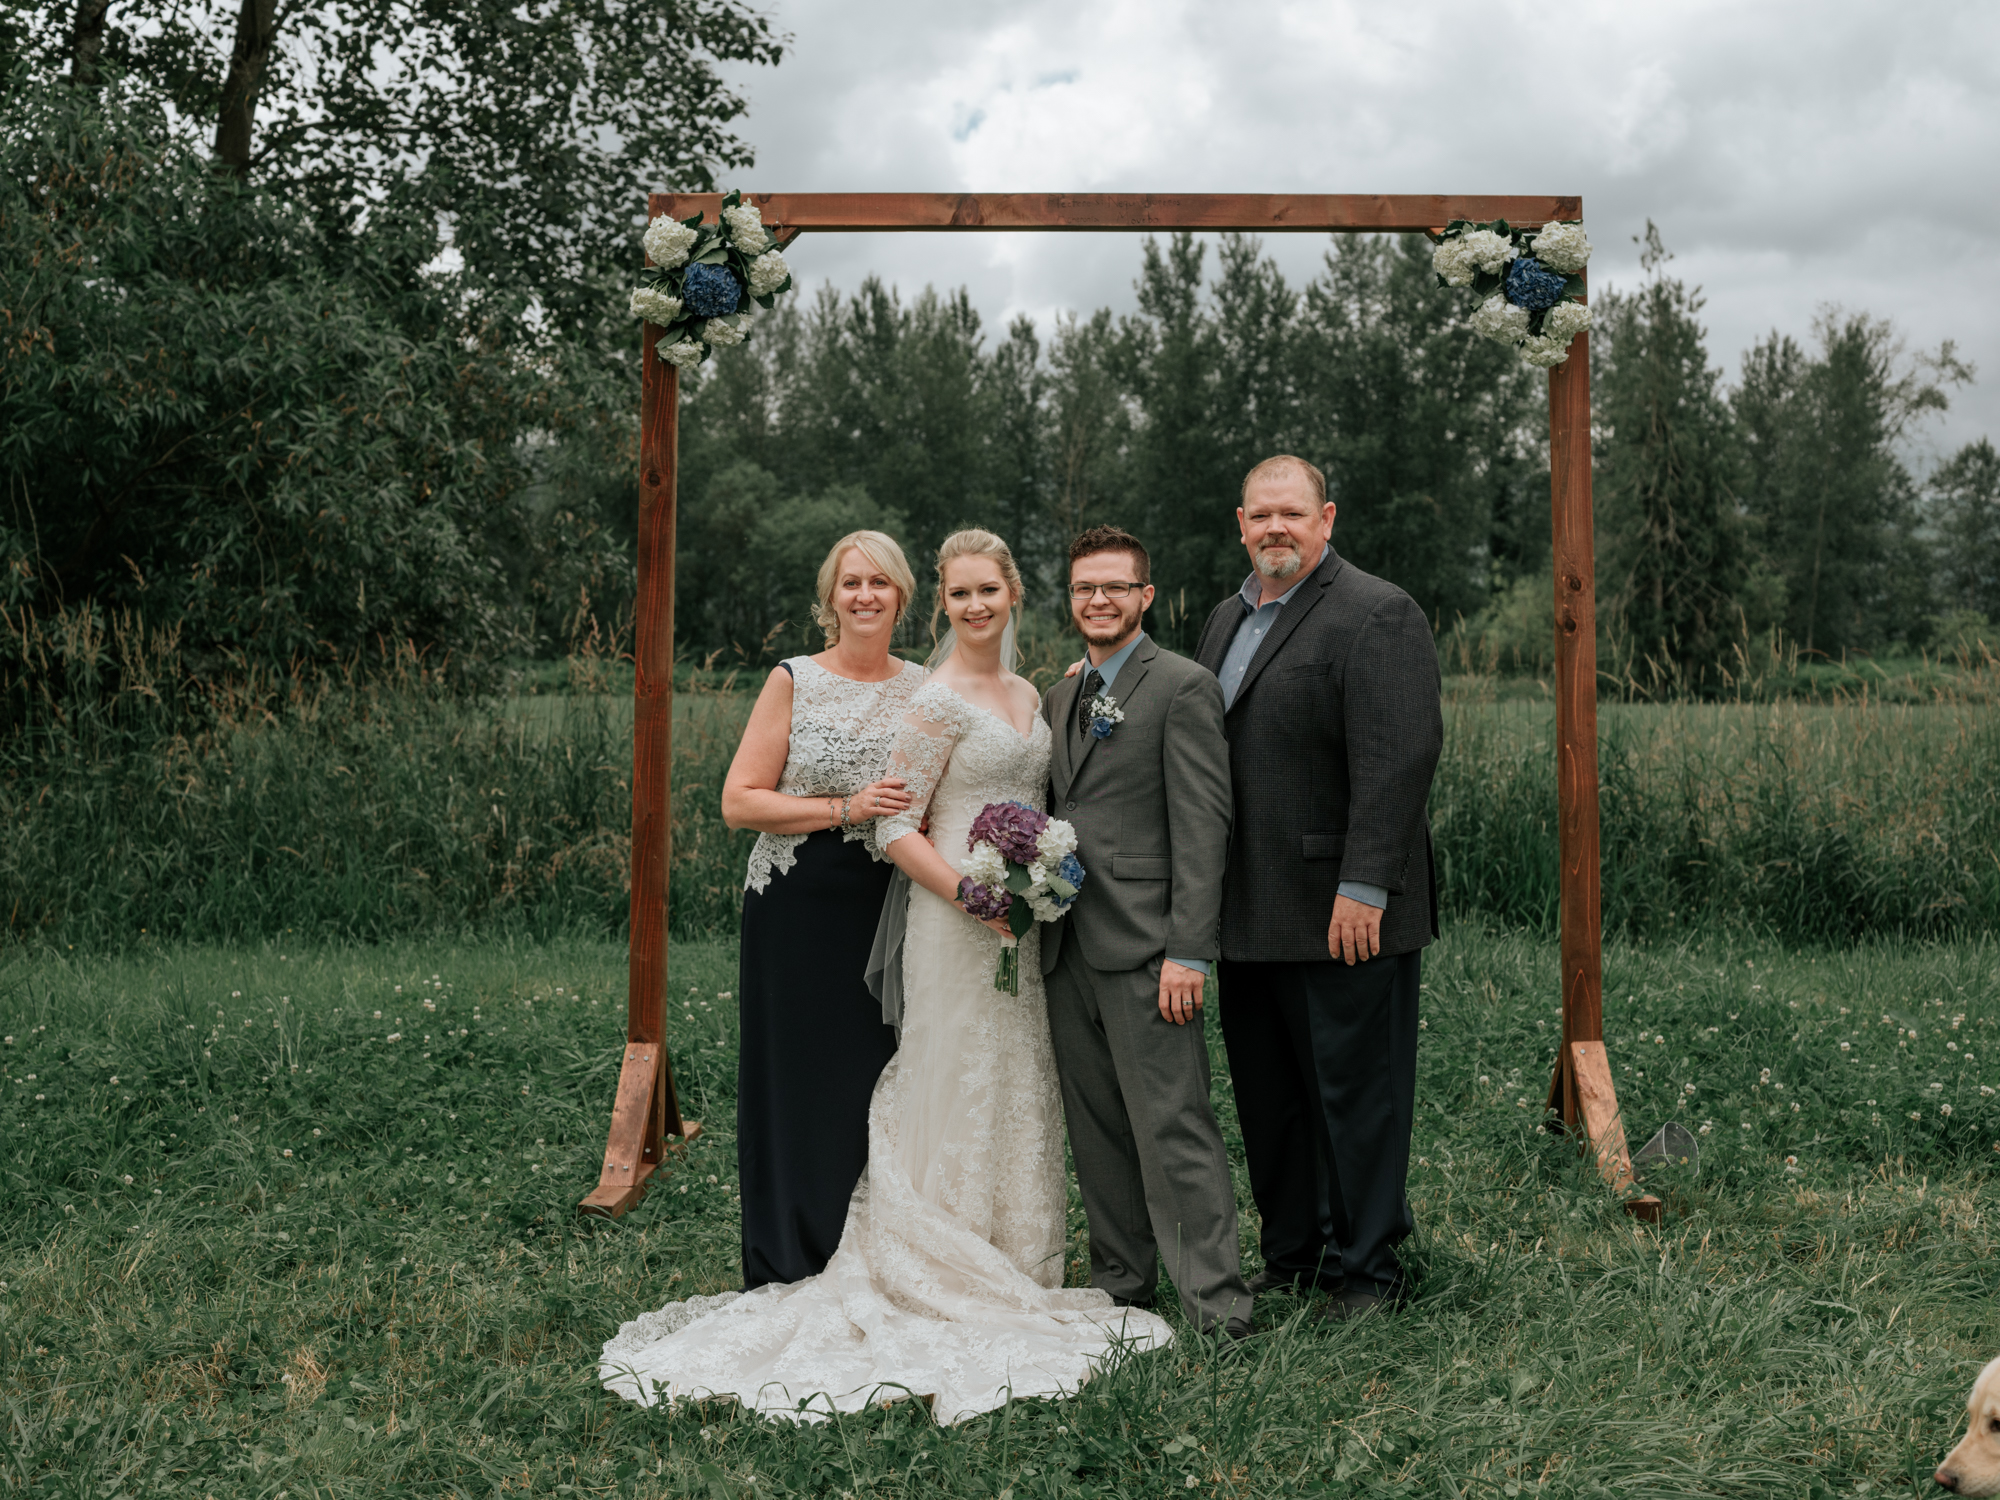 Stolen Glimpses Seattle Wedding Photographer Family Photos Tips6.jpg